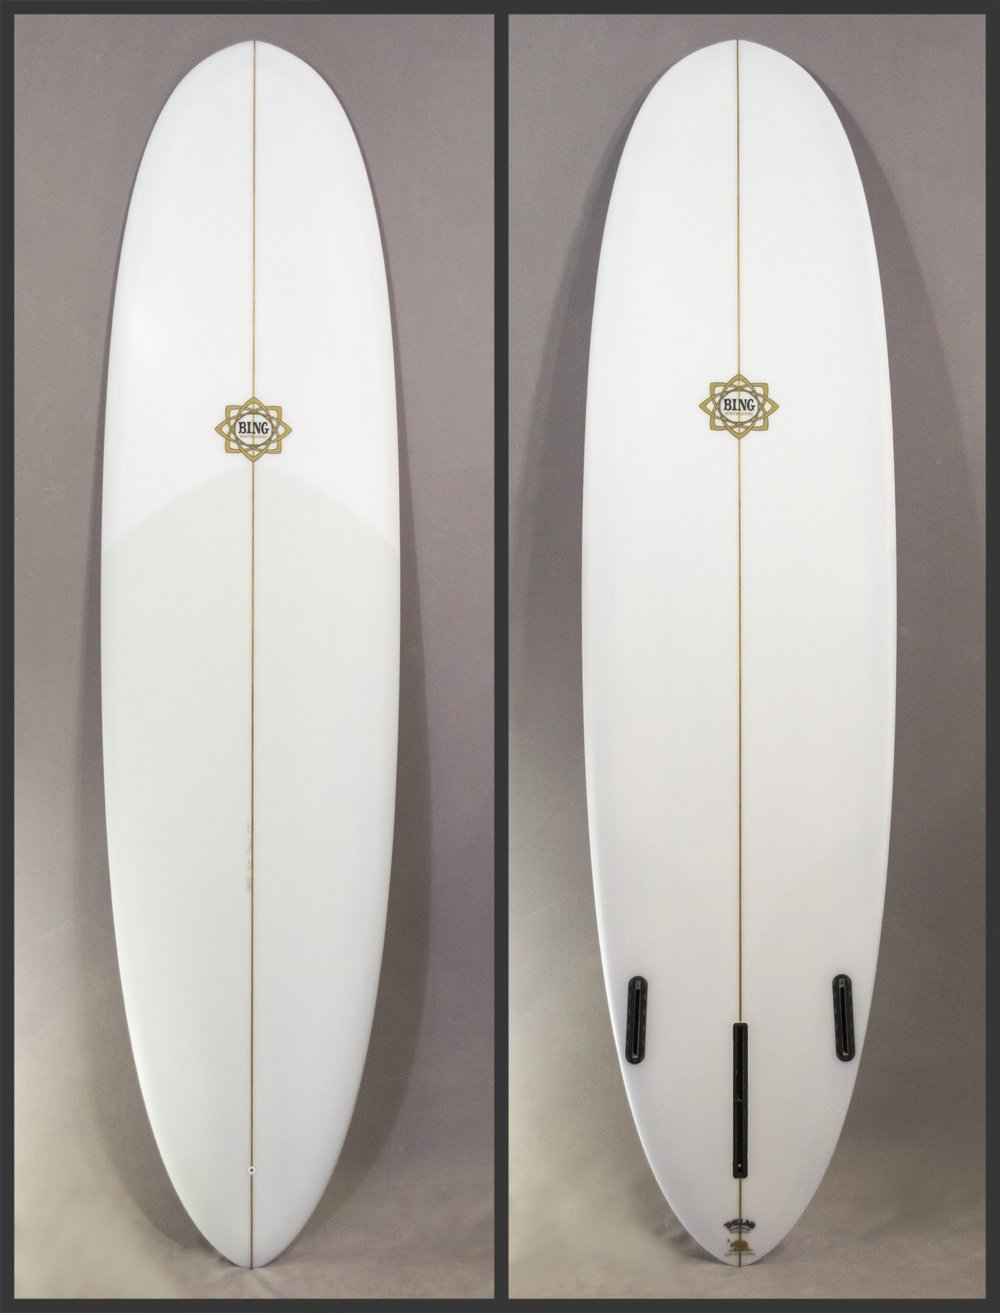 Bing Collector 8'2